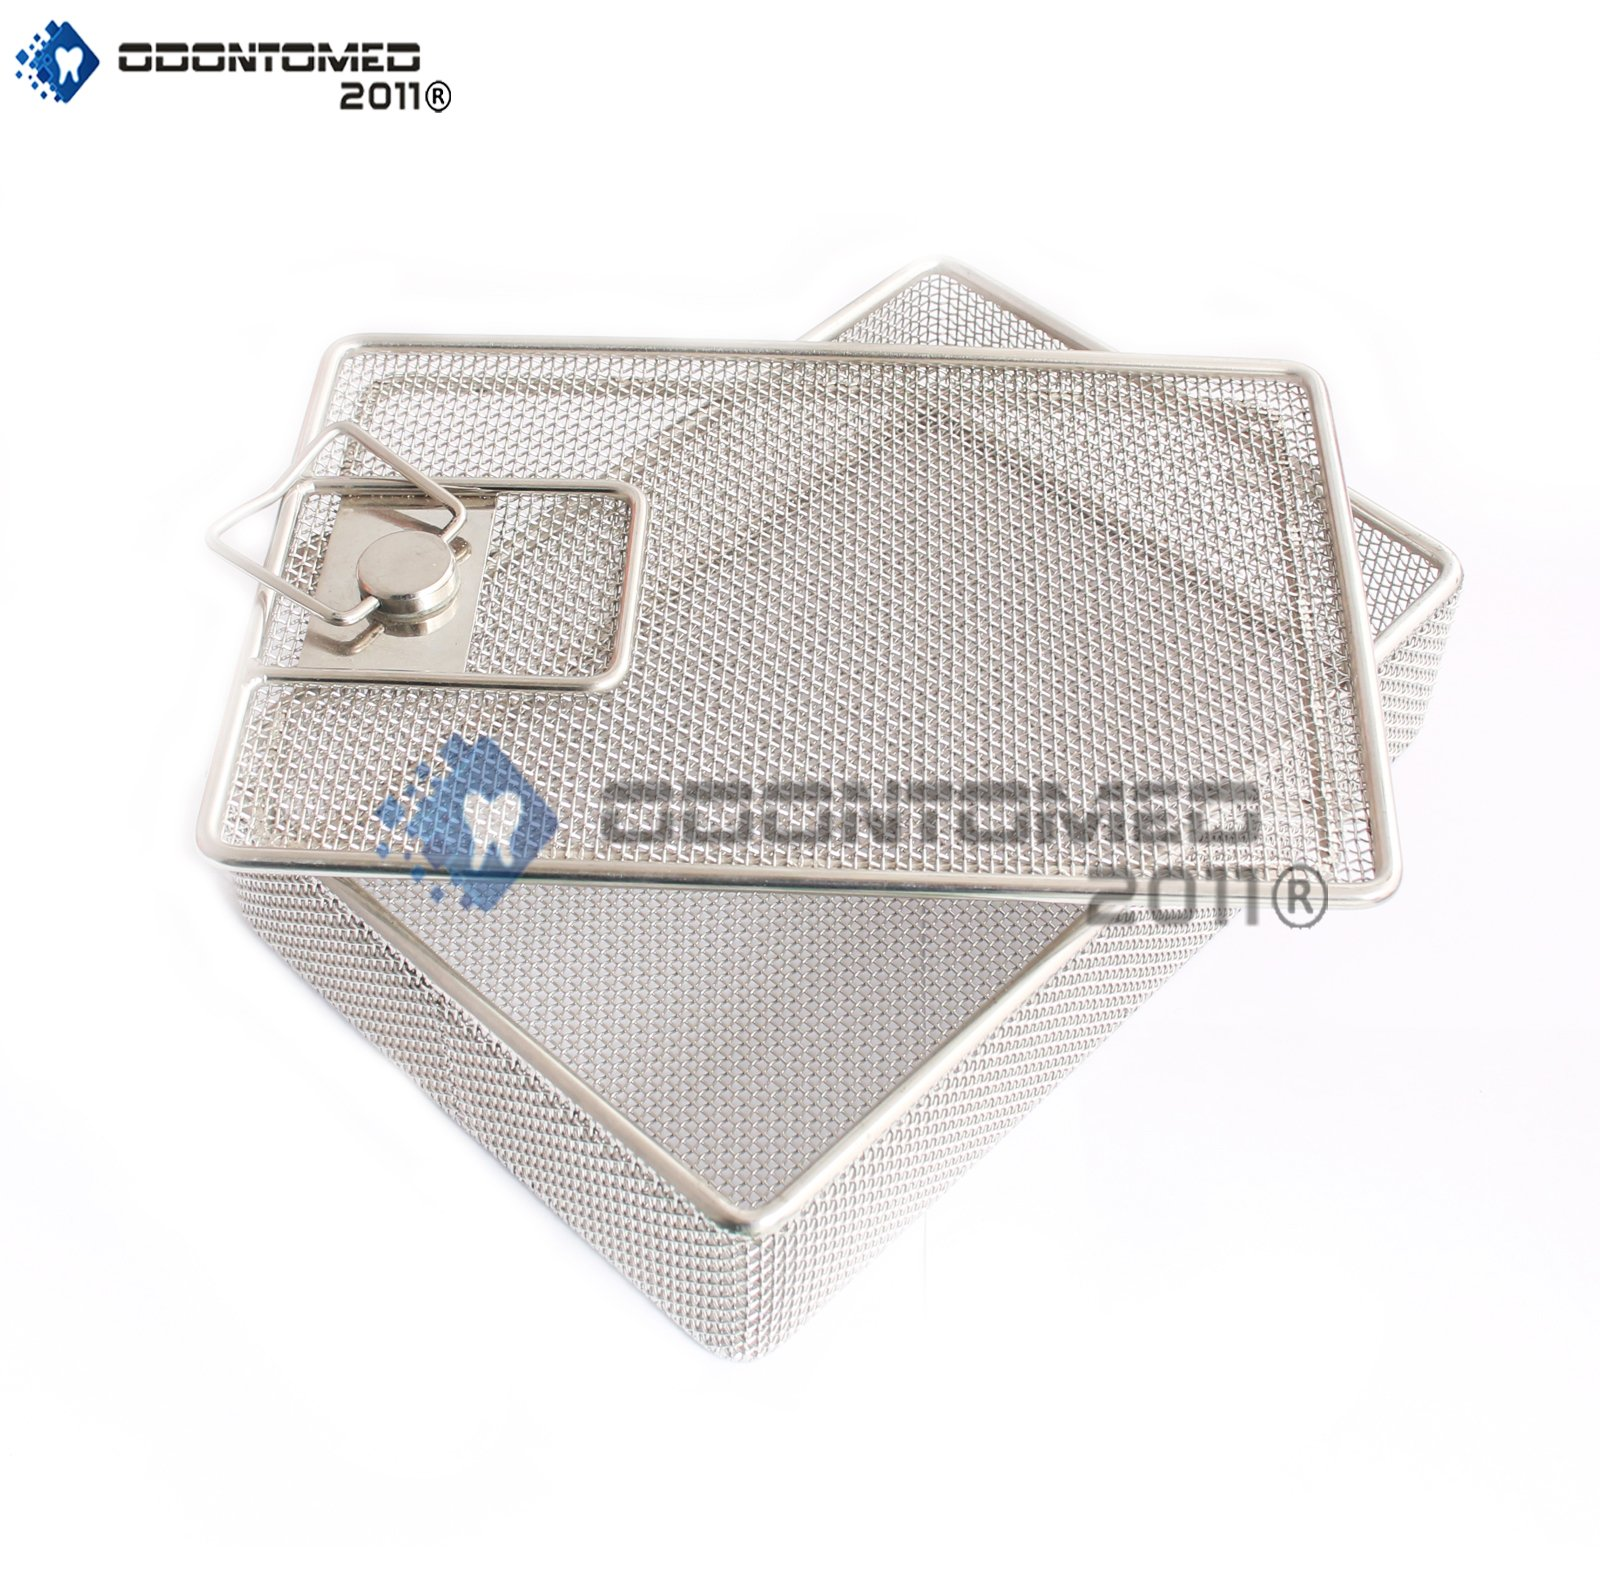 OdontoMed2011 INSTRUMENT TRAY AND MESH PERFORATED BASKETS STERILIZATION TRAY 8.5'' X 6'' X 1.75'' WITH LID STAINLESS STEEL, OD2011-DN-314